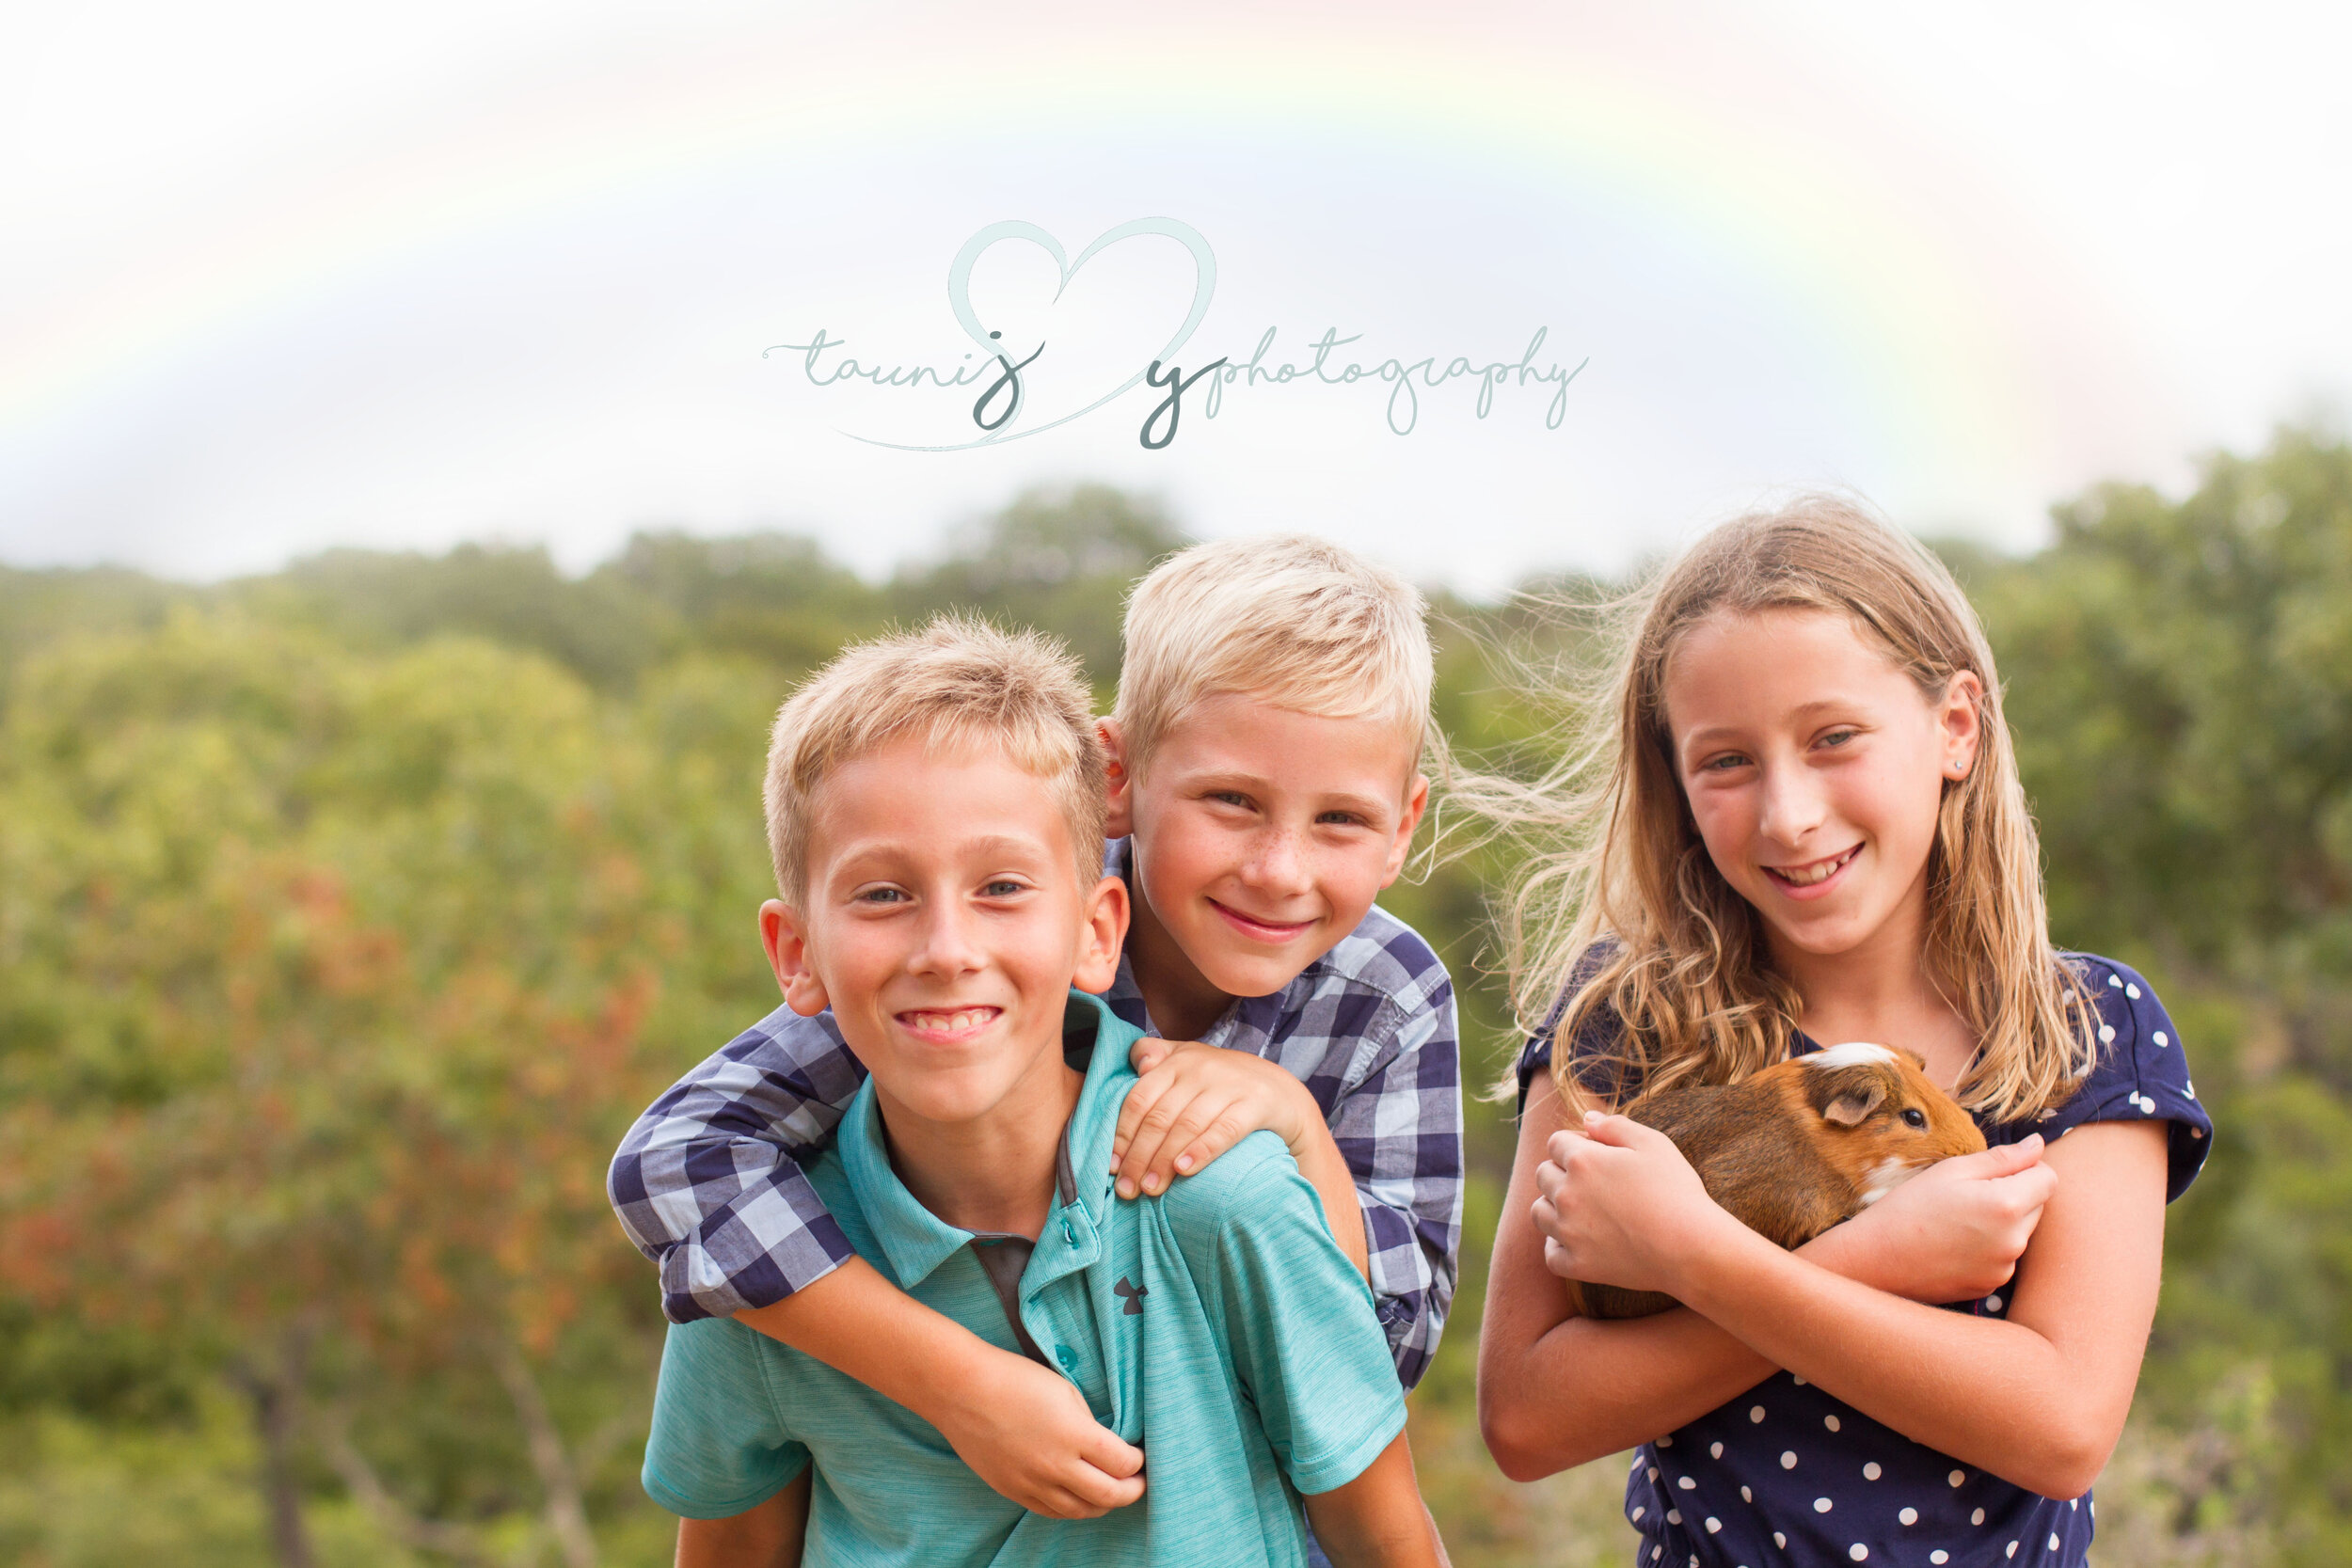 It was rainy , good thing it was an indoor lifestyle photography session ! But when the rain stopped we hopped outside for a few Lago Vista outdoor images! Do you spot the rainbow?